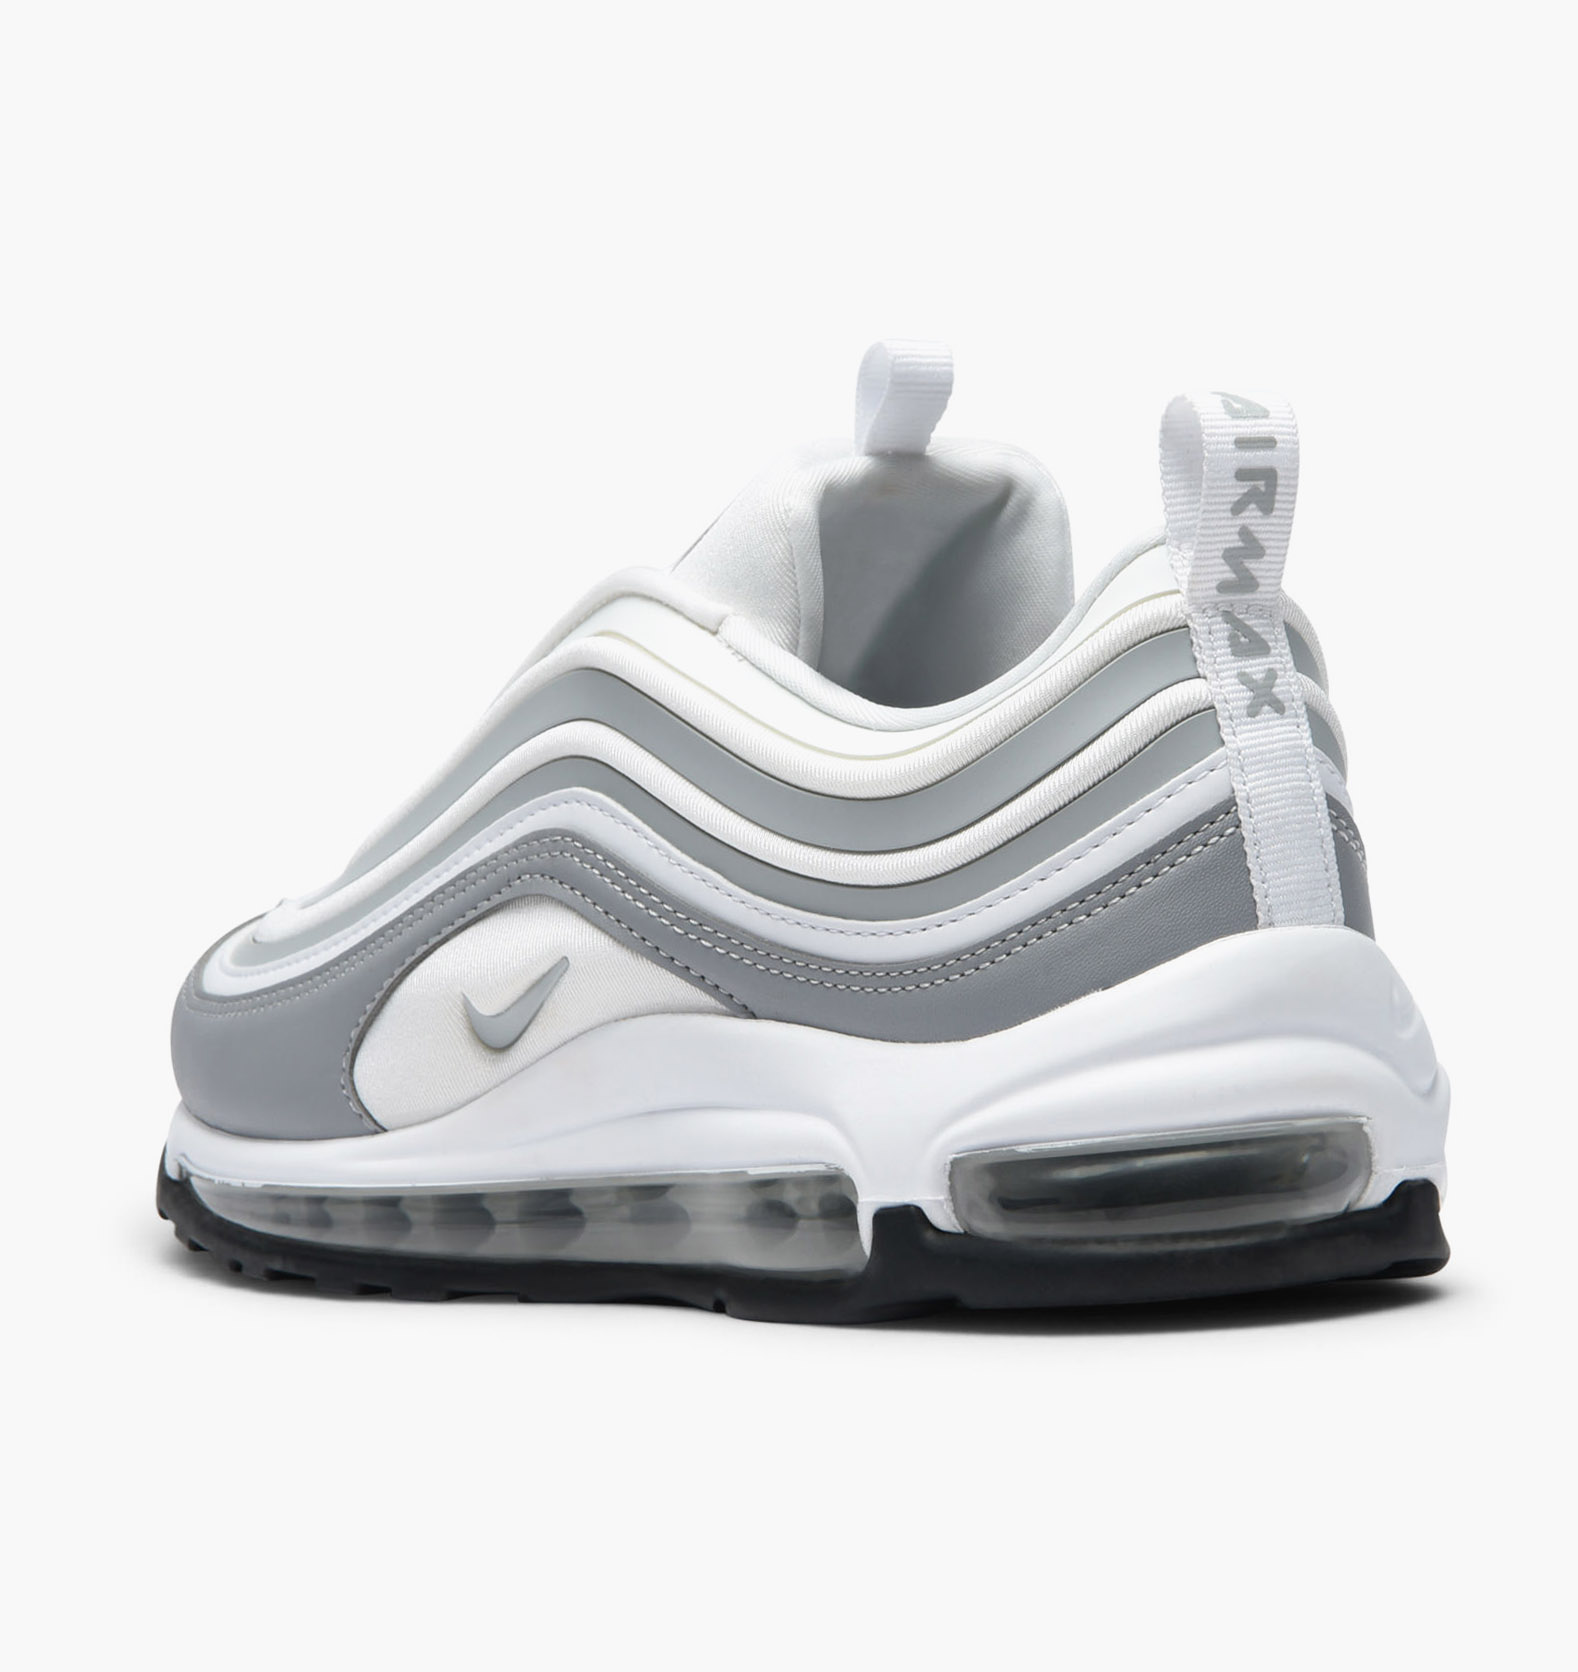 Cheapest Nike Air Max 97 GS Pink White 313054 161 Women's Running Shoes Trainers